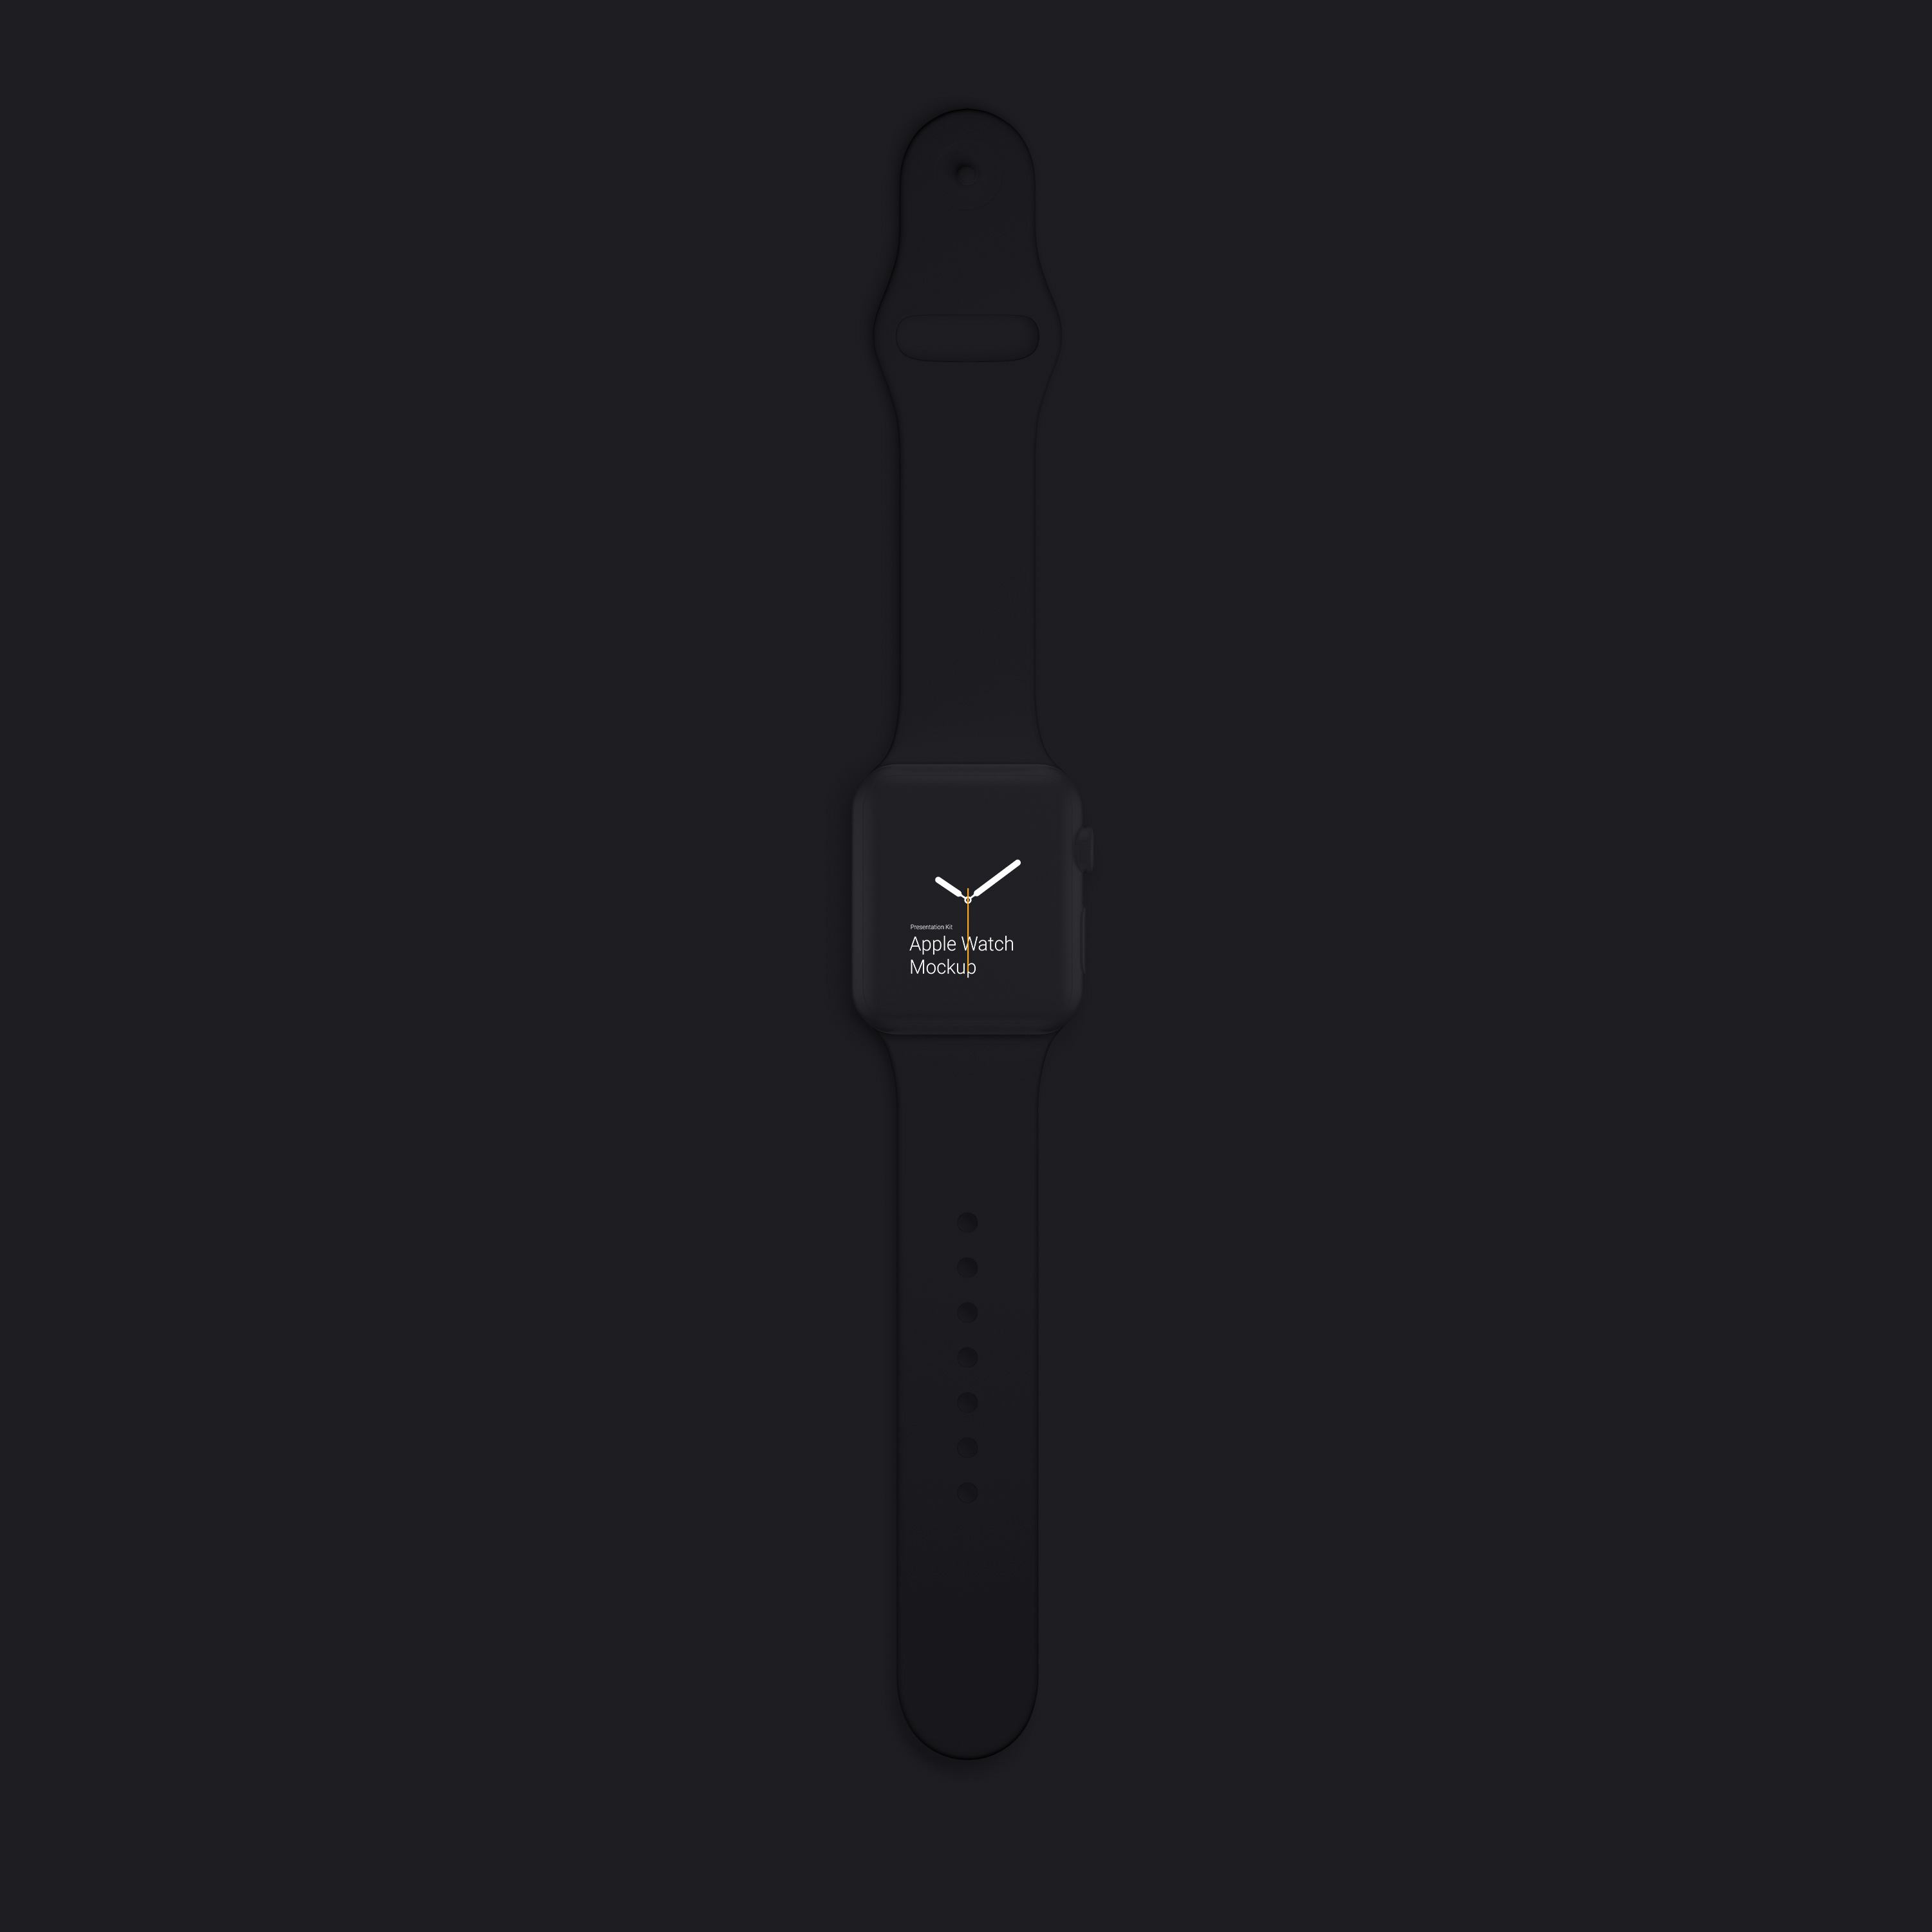 Download Apple Watch Mockup for Sketch and Photoshop